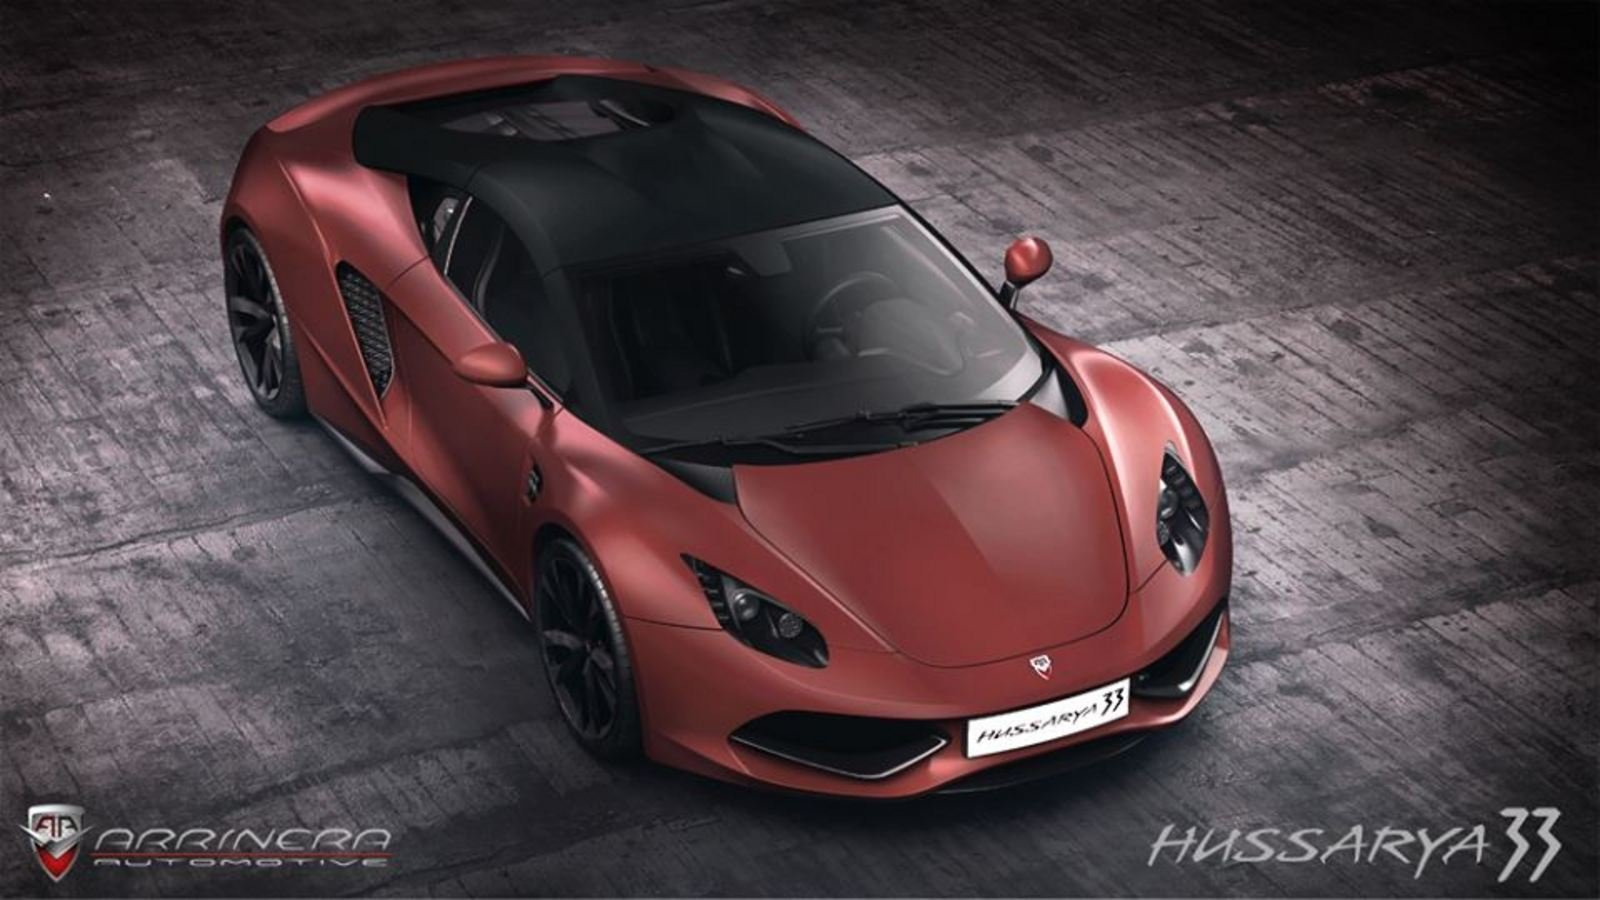 New 2015 Arrinera Hussarya 33 Review Top Speed On This Month